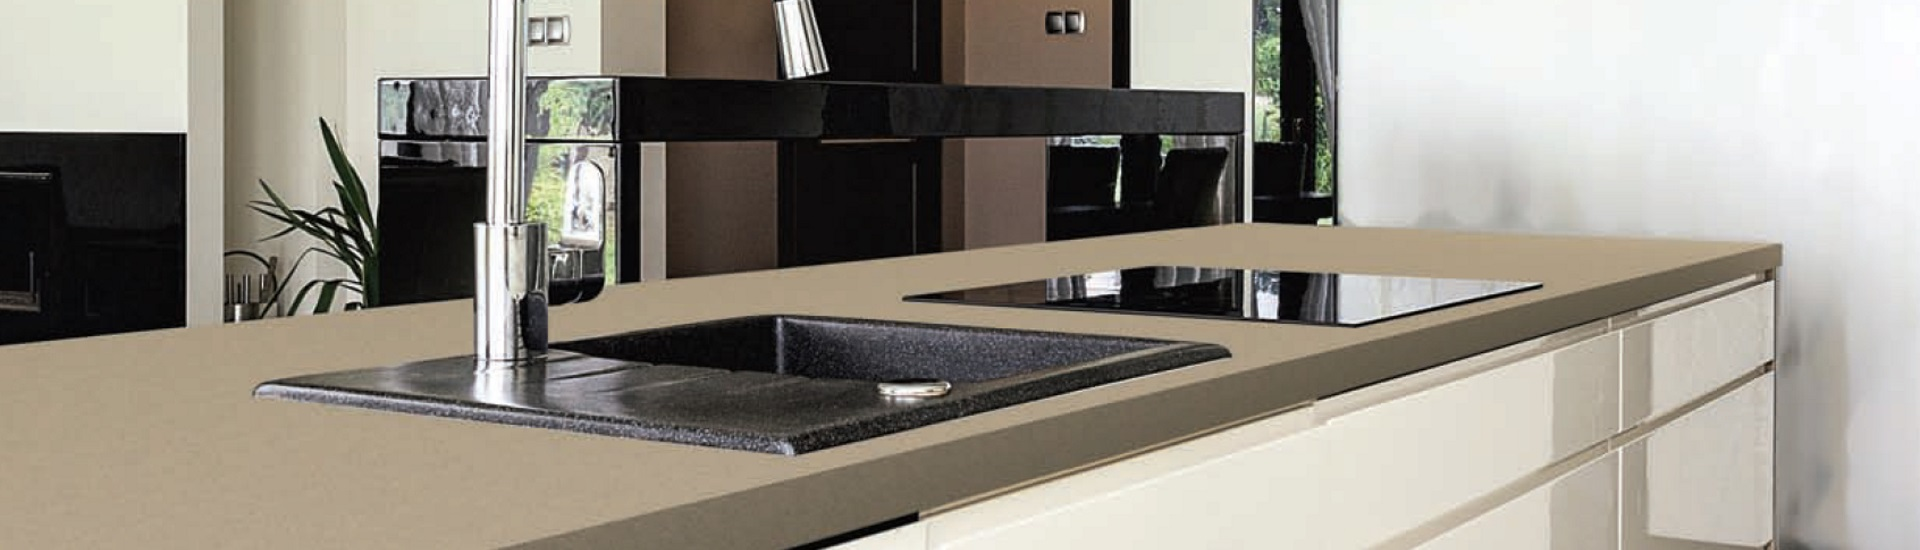 Kitchen worktop installation and supply in Carlisle, Cumbria